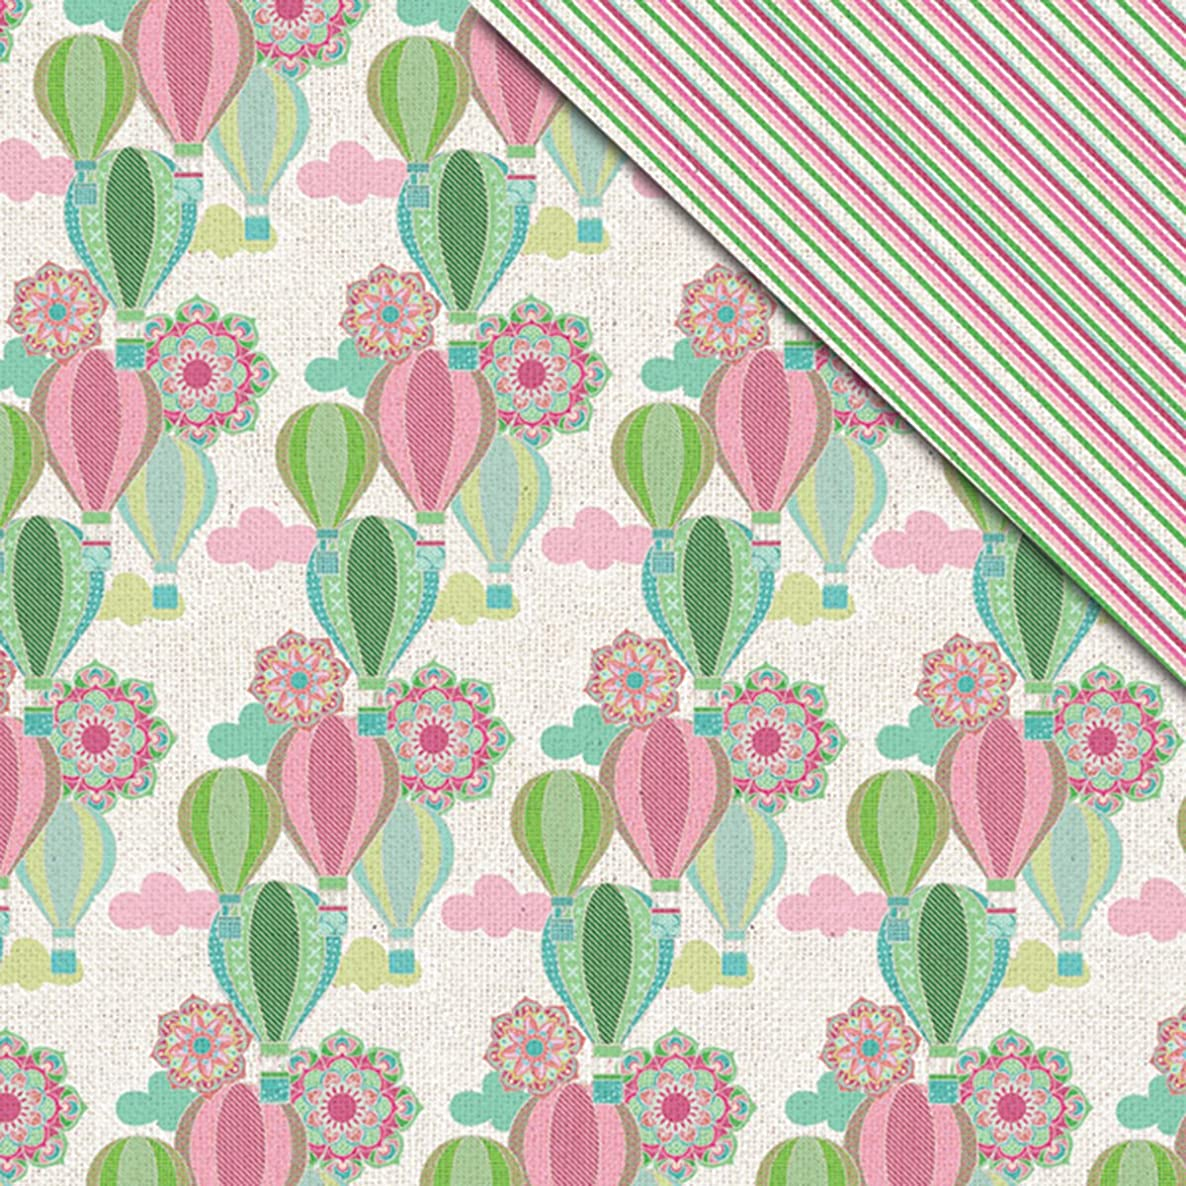 FabScraps C83 006 Kaleidoscope Double-Sided Cardstock (25 Sheets Per Pack), 12